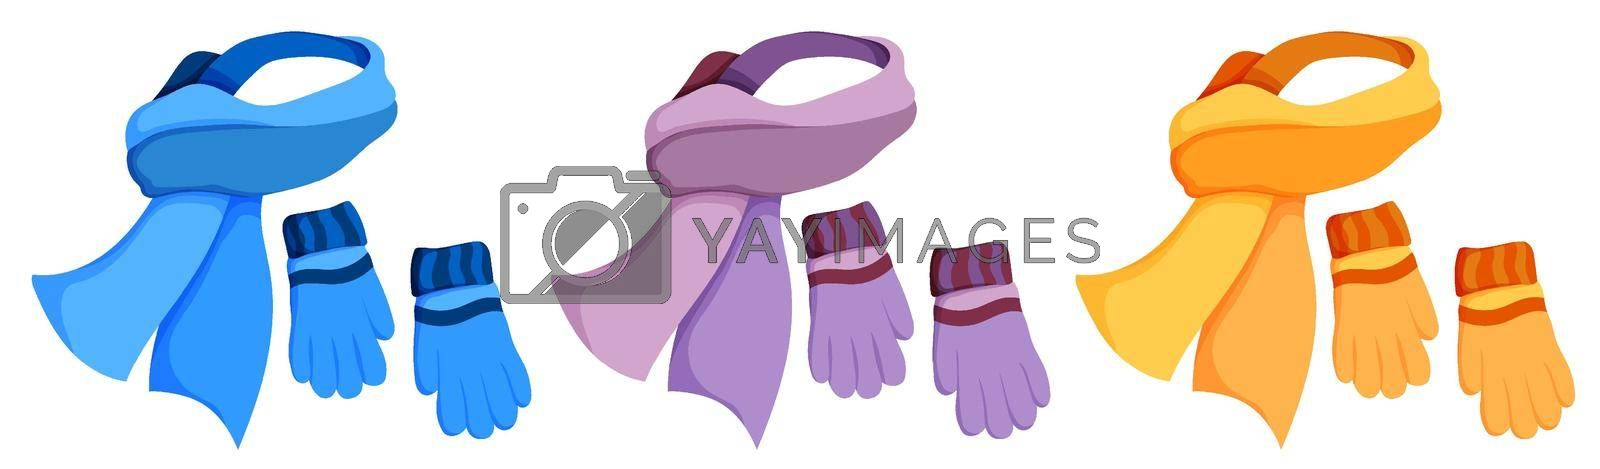 winter warm scarf and wool gloves. Winter clothing for cold weather. Caring for health of children. Cartoon color vector